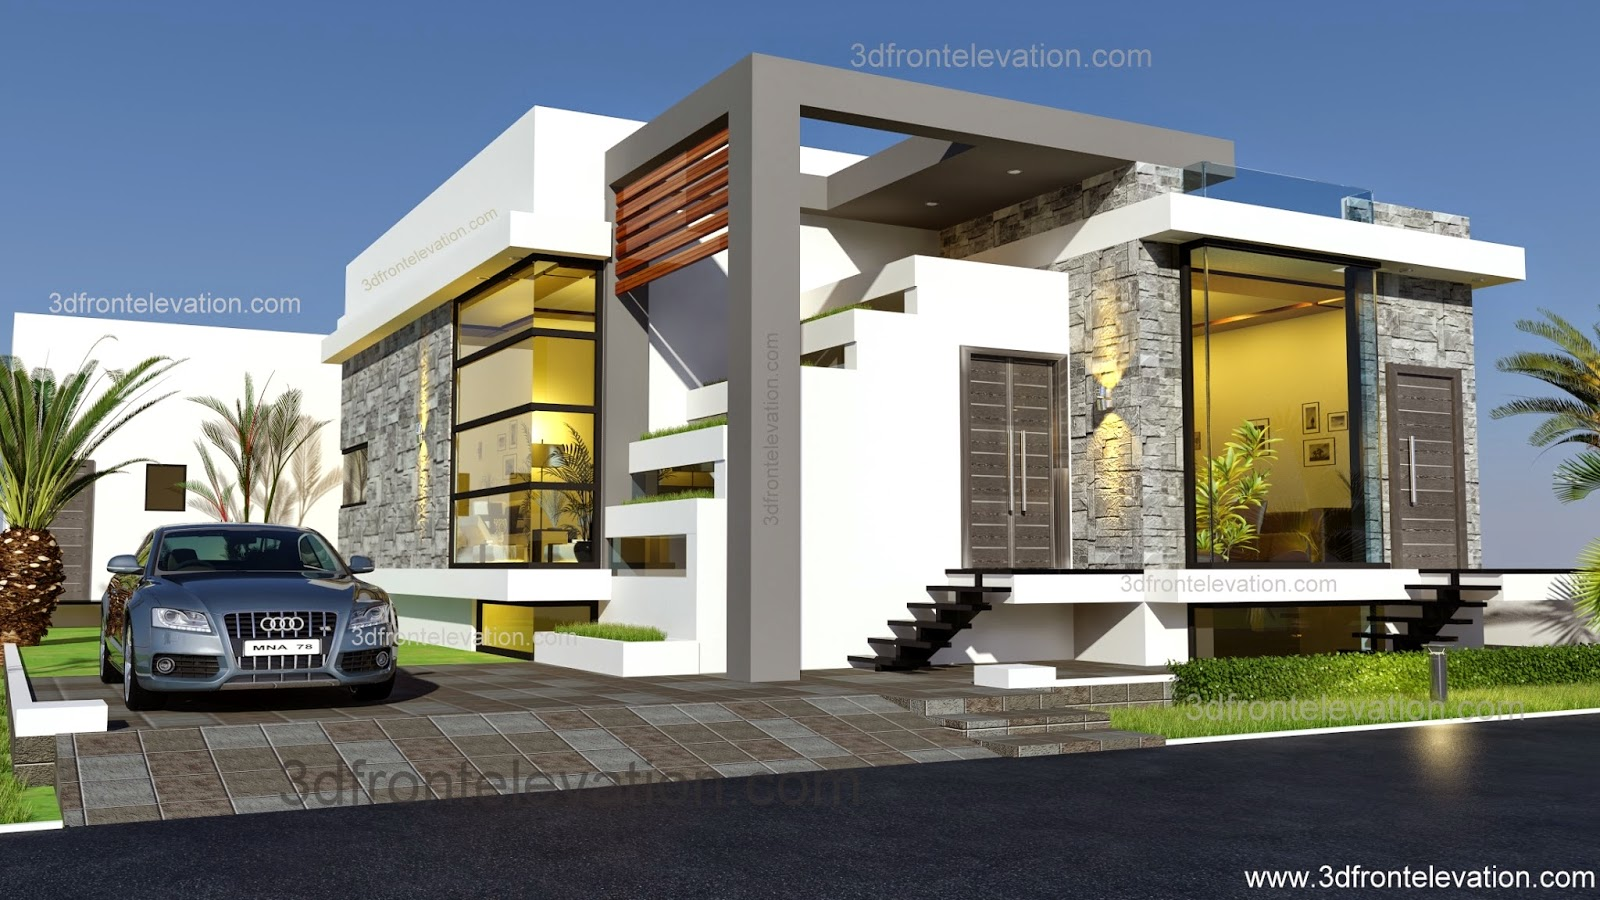 3D Front Elevation.com: Afghanistan House design 2015 ANOMINA Society